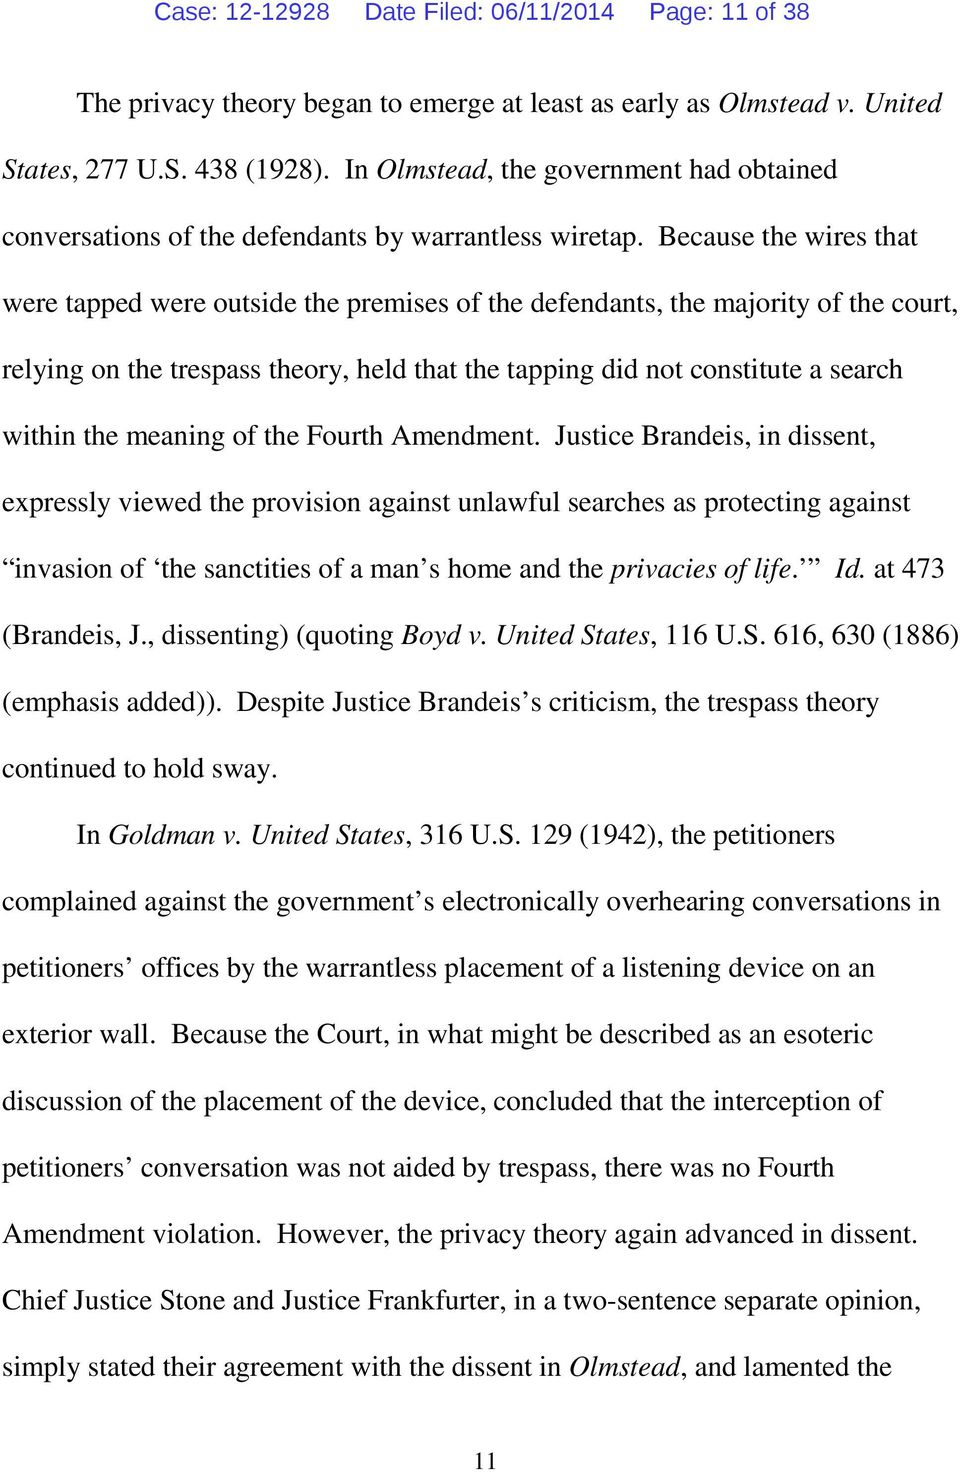 Because the wires that were tapped were outside the premises of the defendants, the majority of the court, relying on the trespass theory, held that the tapping did not constitute a search within the